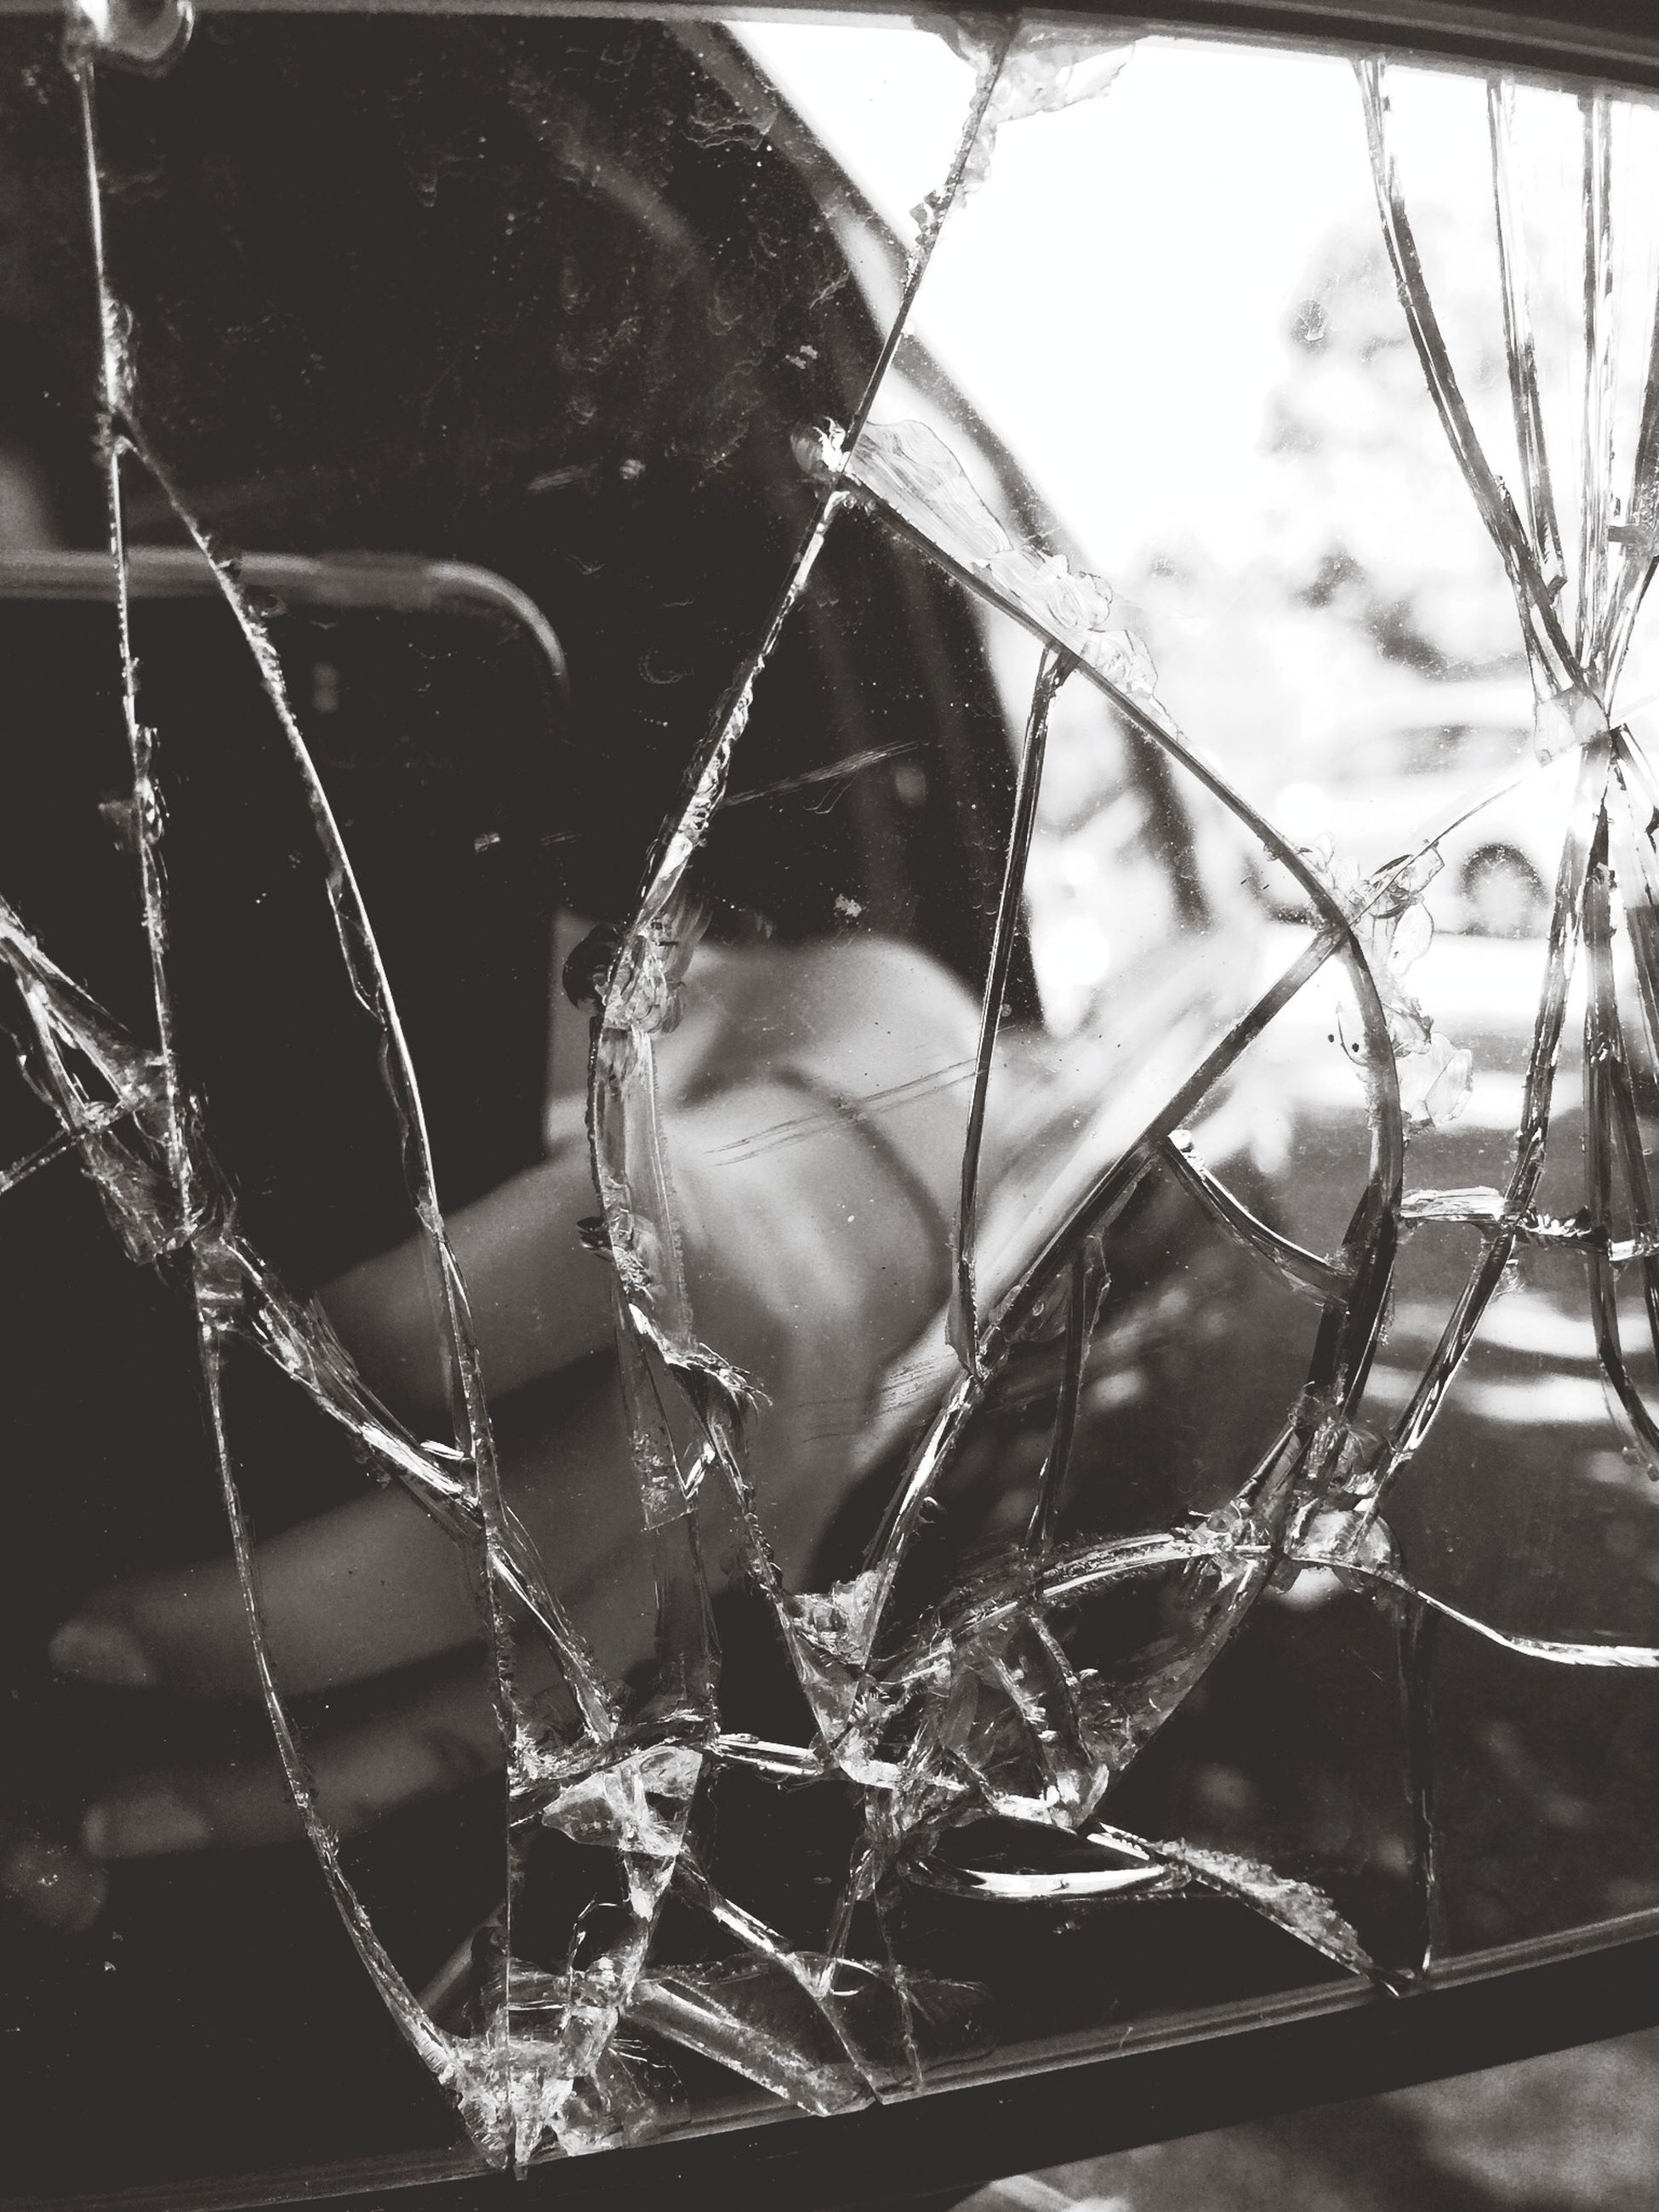 close-up, spider web, focus on foreground, natural pattern, nature, fragility, outdoors, no people, plant, twig, water, day, branch, complexity, dead plant, detail, pattern, drop, hanging, spider